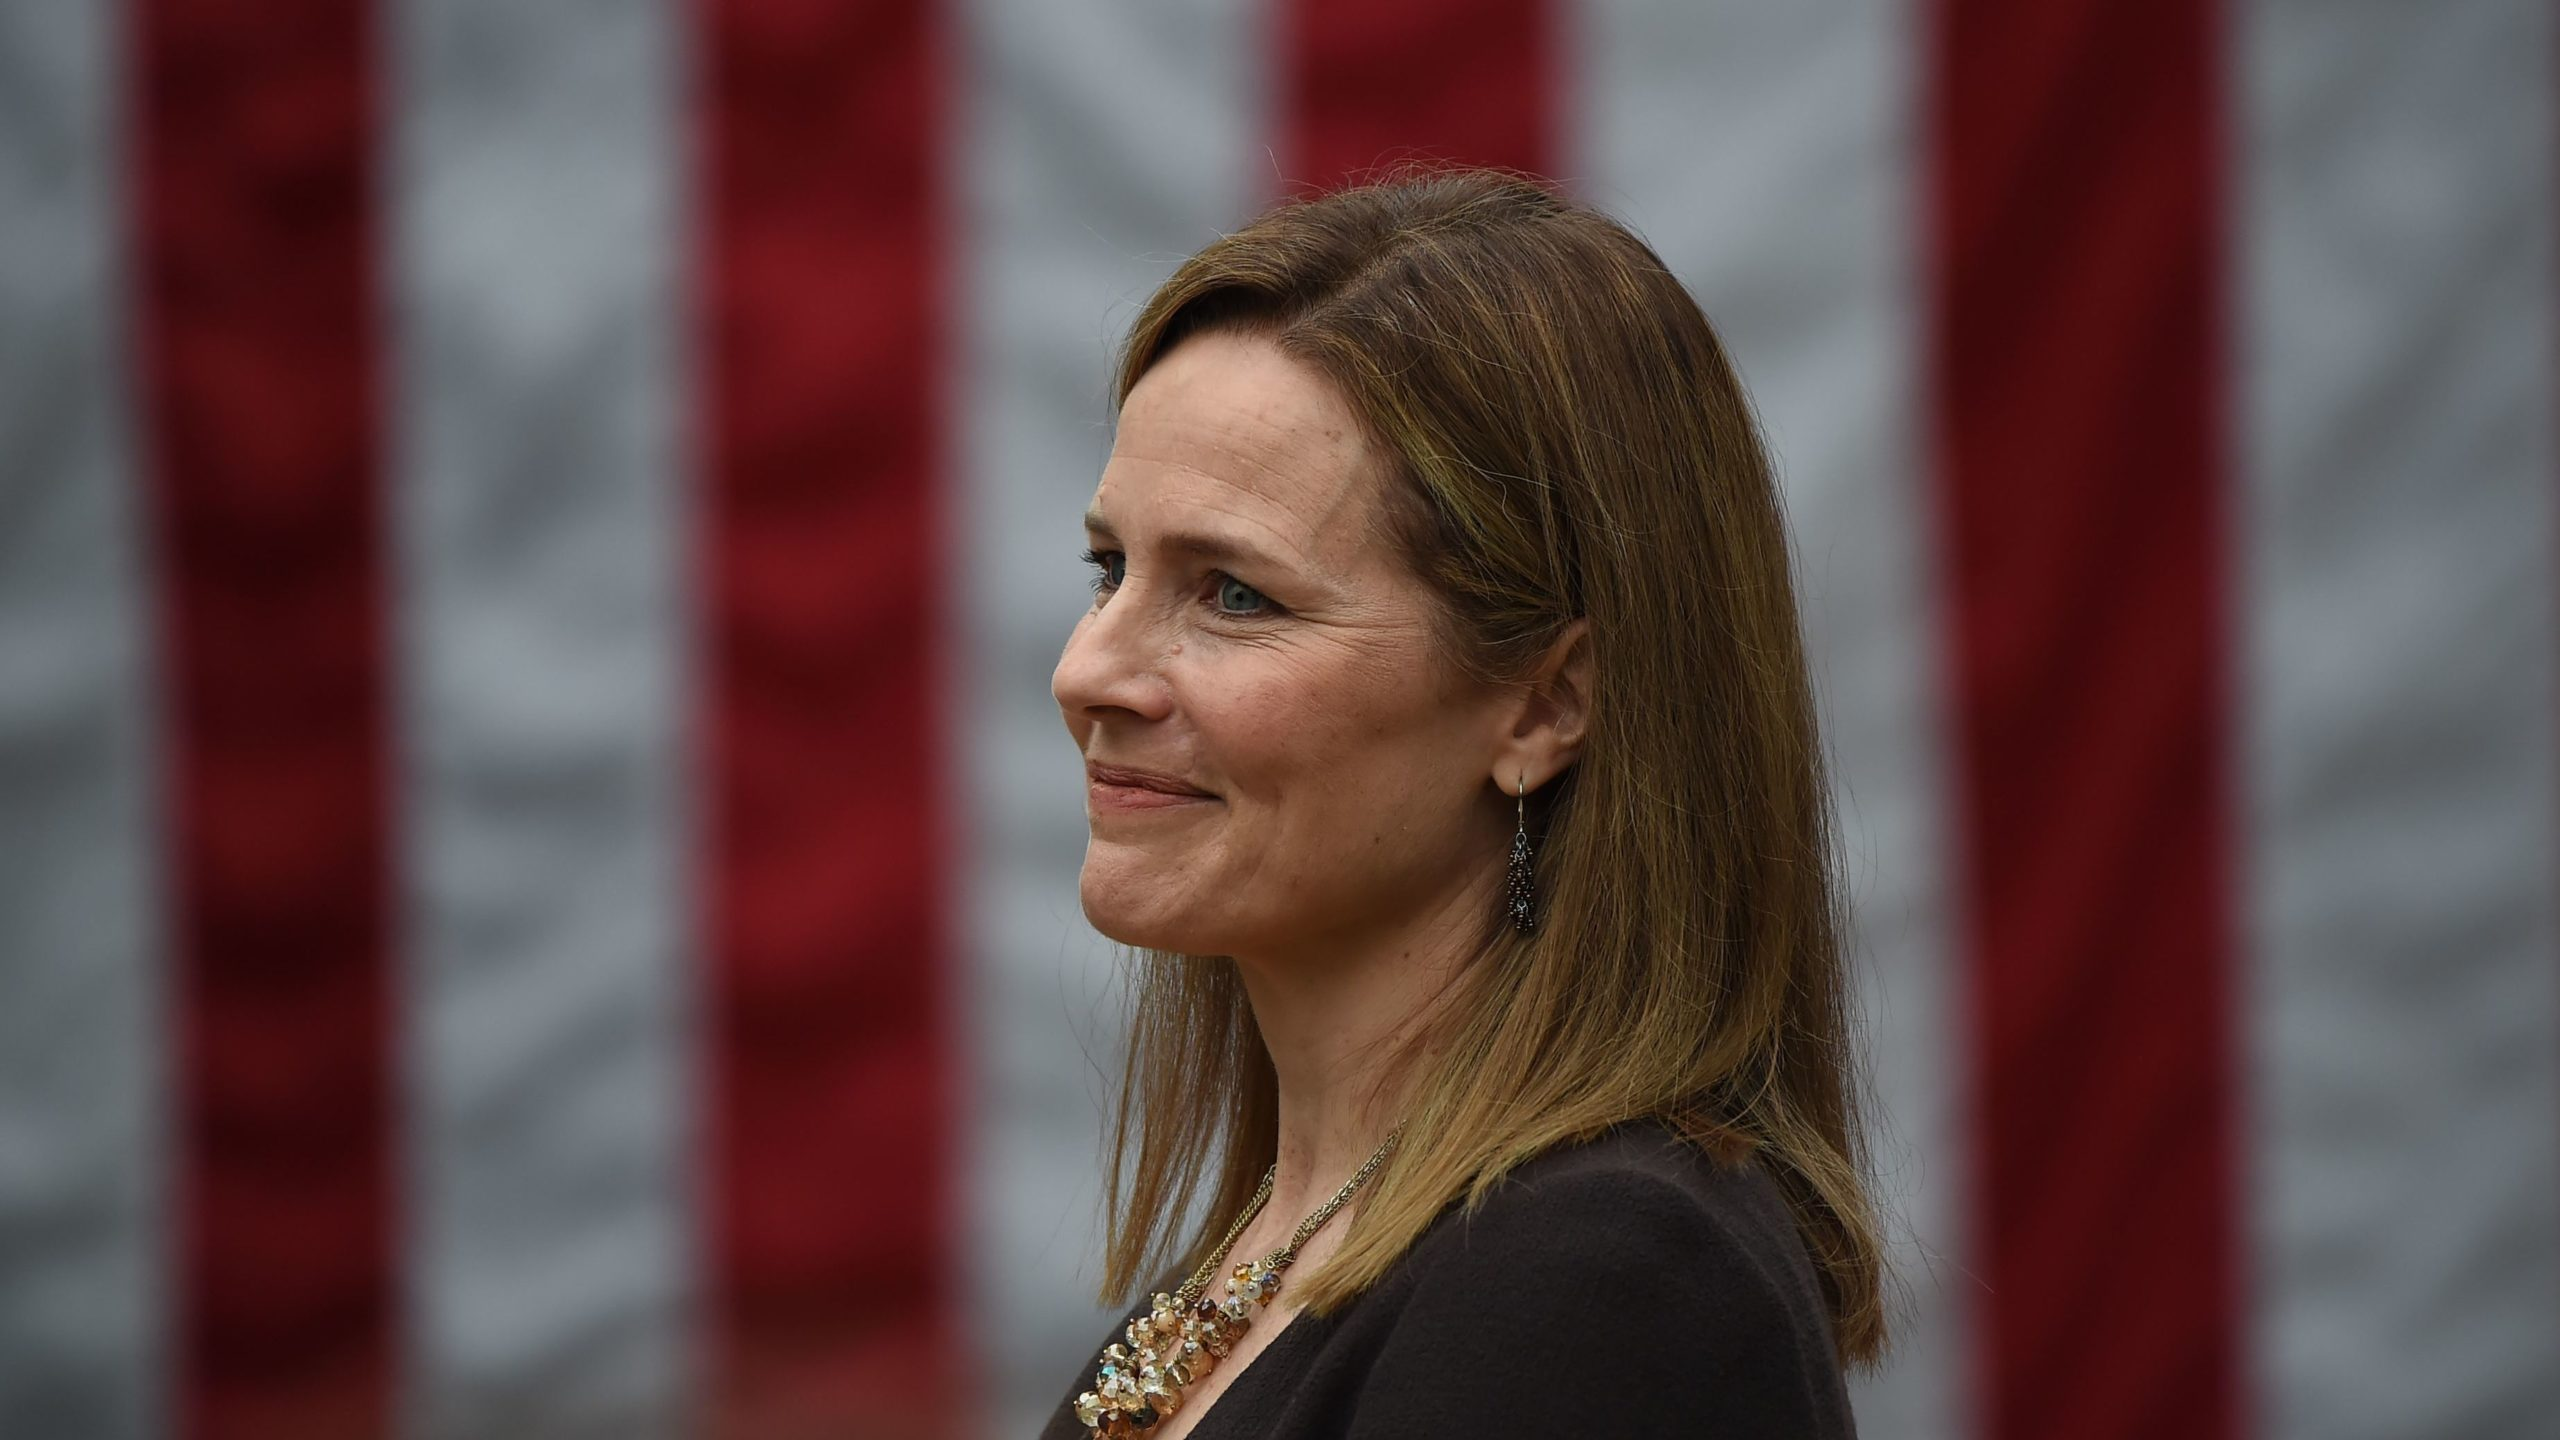 Judge Amy Coney Barrett is nominated to the US Supreme Court by President Donald Trump in the Rose Garden of the White House in Washington, DC on September 26, 2020. - Barrett, if confirmed by the US Senate, will replace Justice Ruth Bader Ginsburg, who died on September 18. (Photo by Olivier DOULIERY / AFP) (Photo by OLIVIER DOULIERY/AFP via Getty Images)